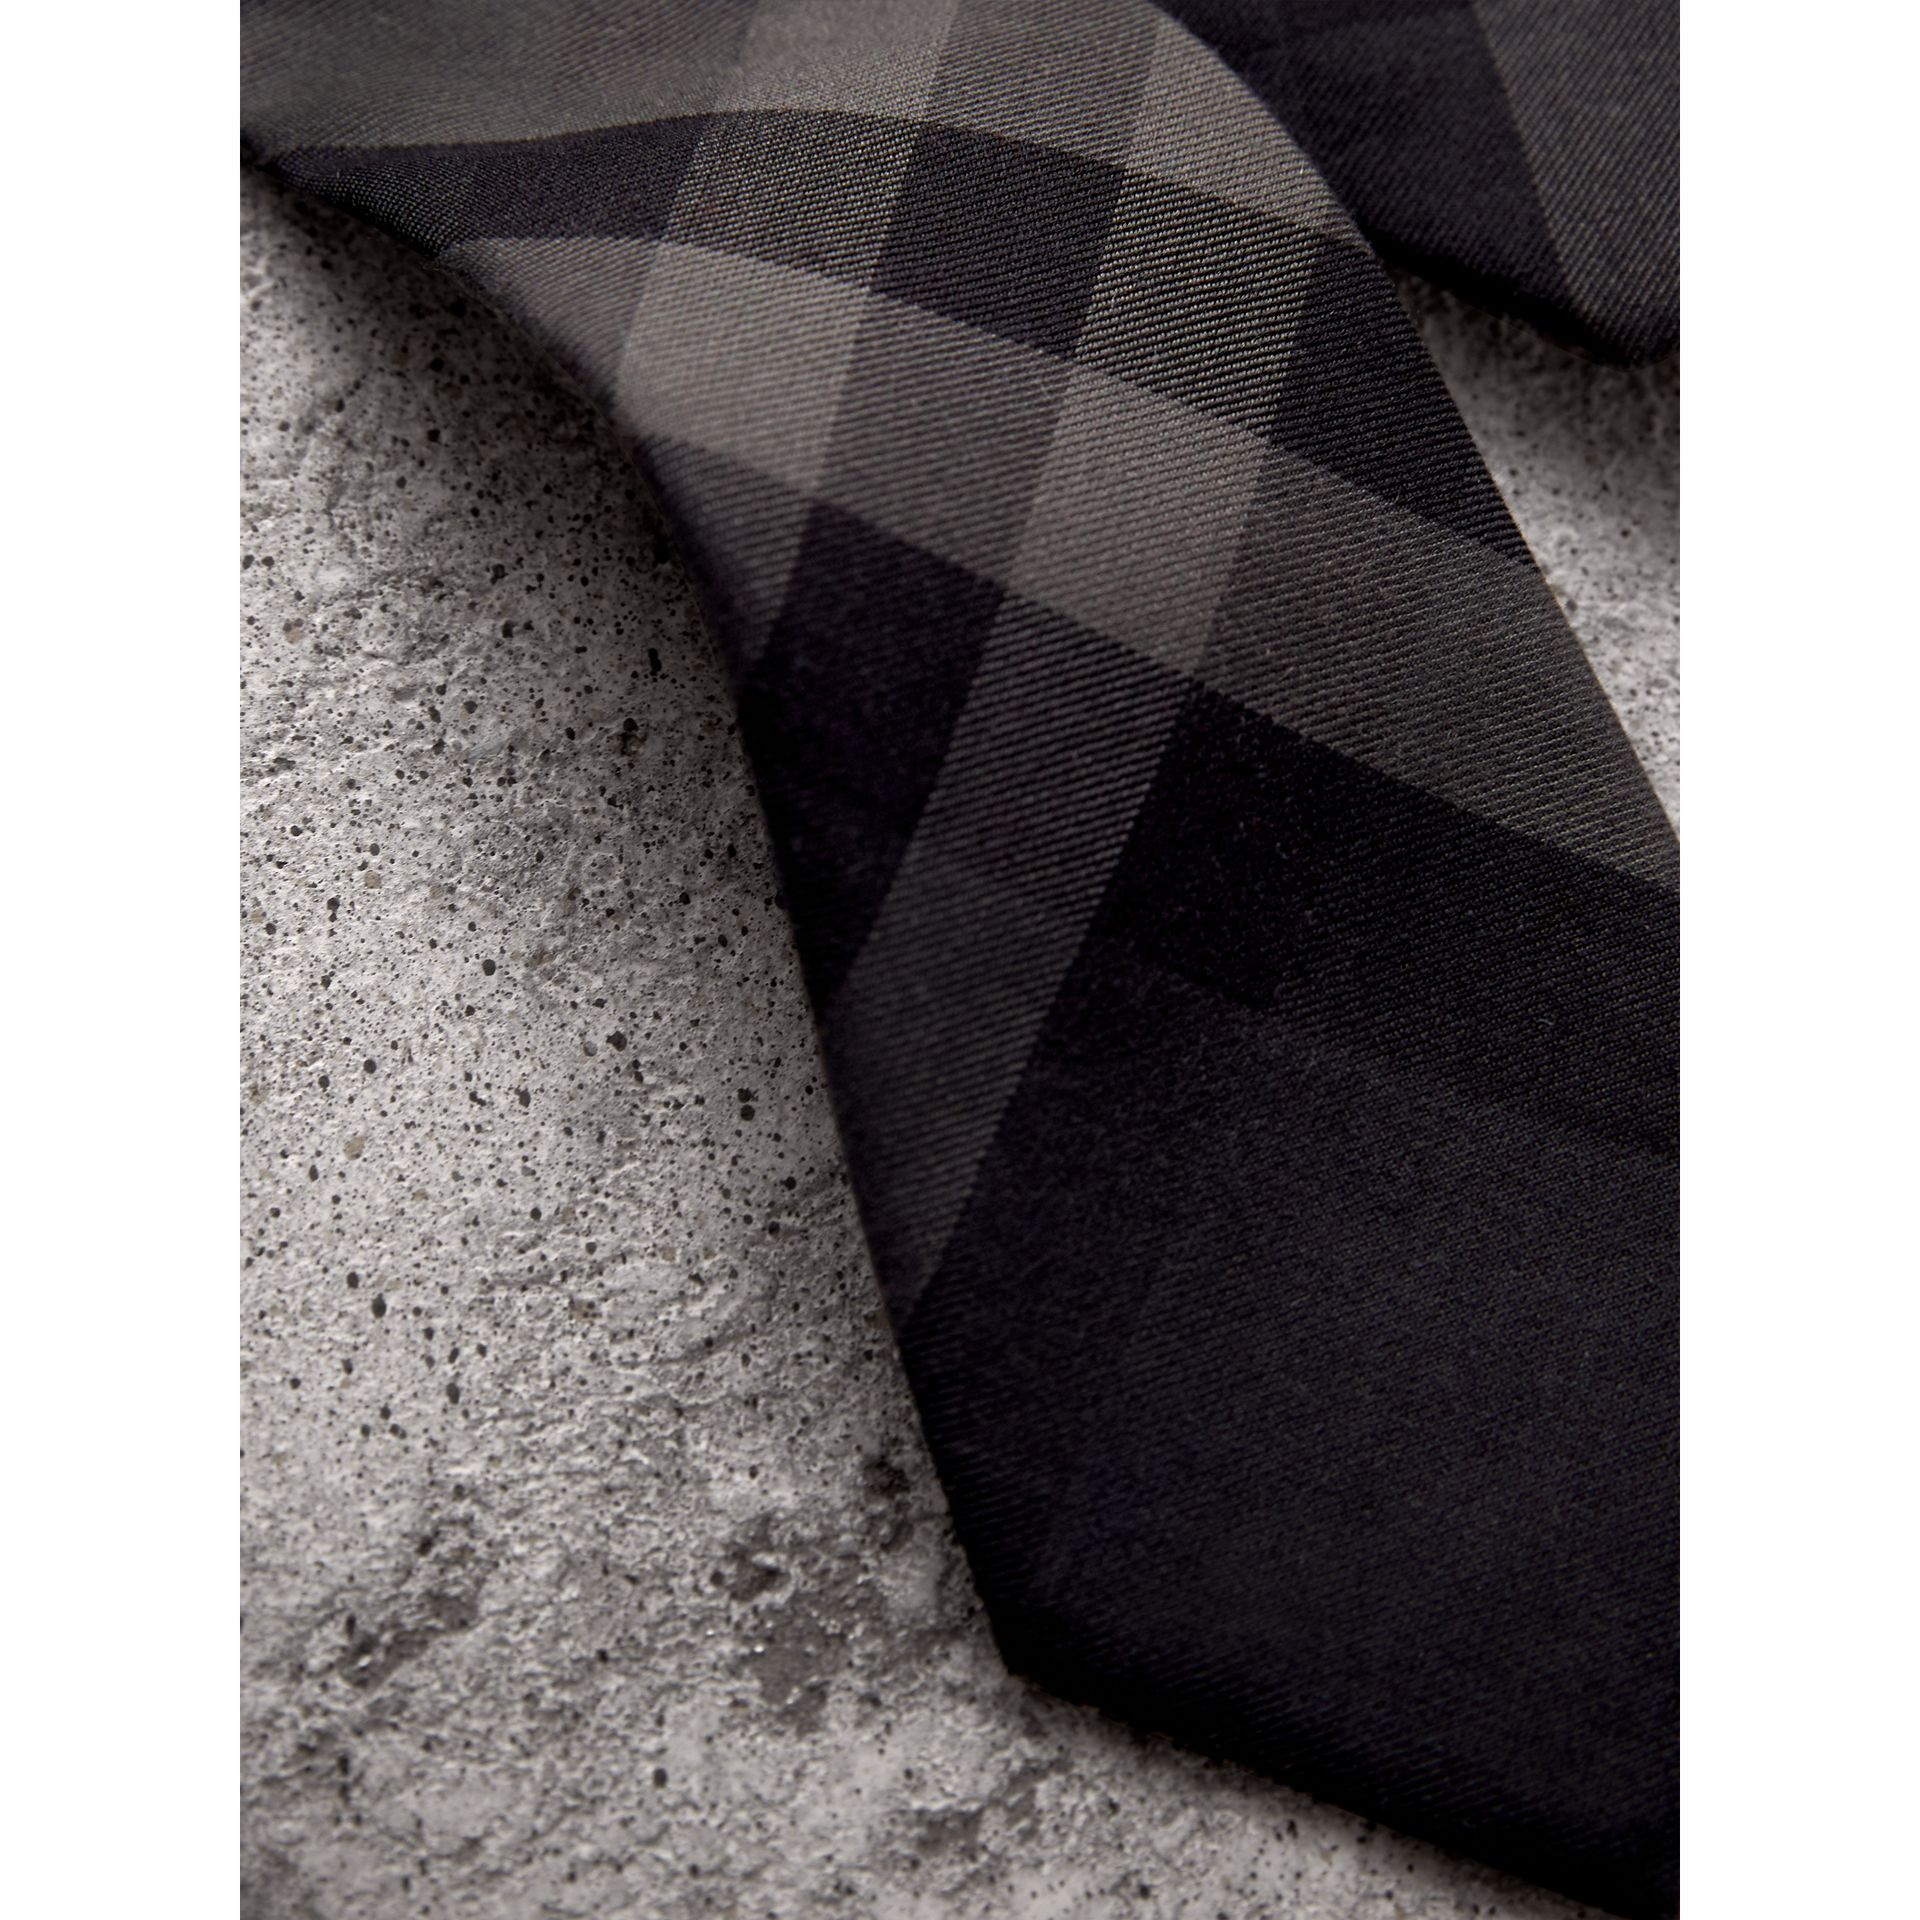 Modern Cut Check Cotton Cashmere Tie in Charcoal - Men | Burberry - gallery image 1